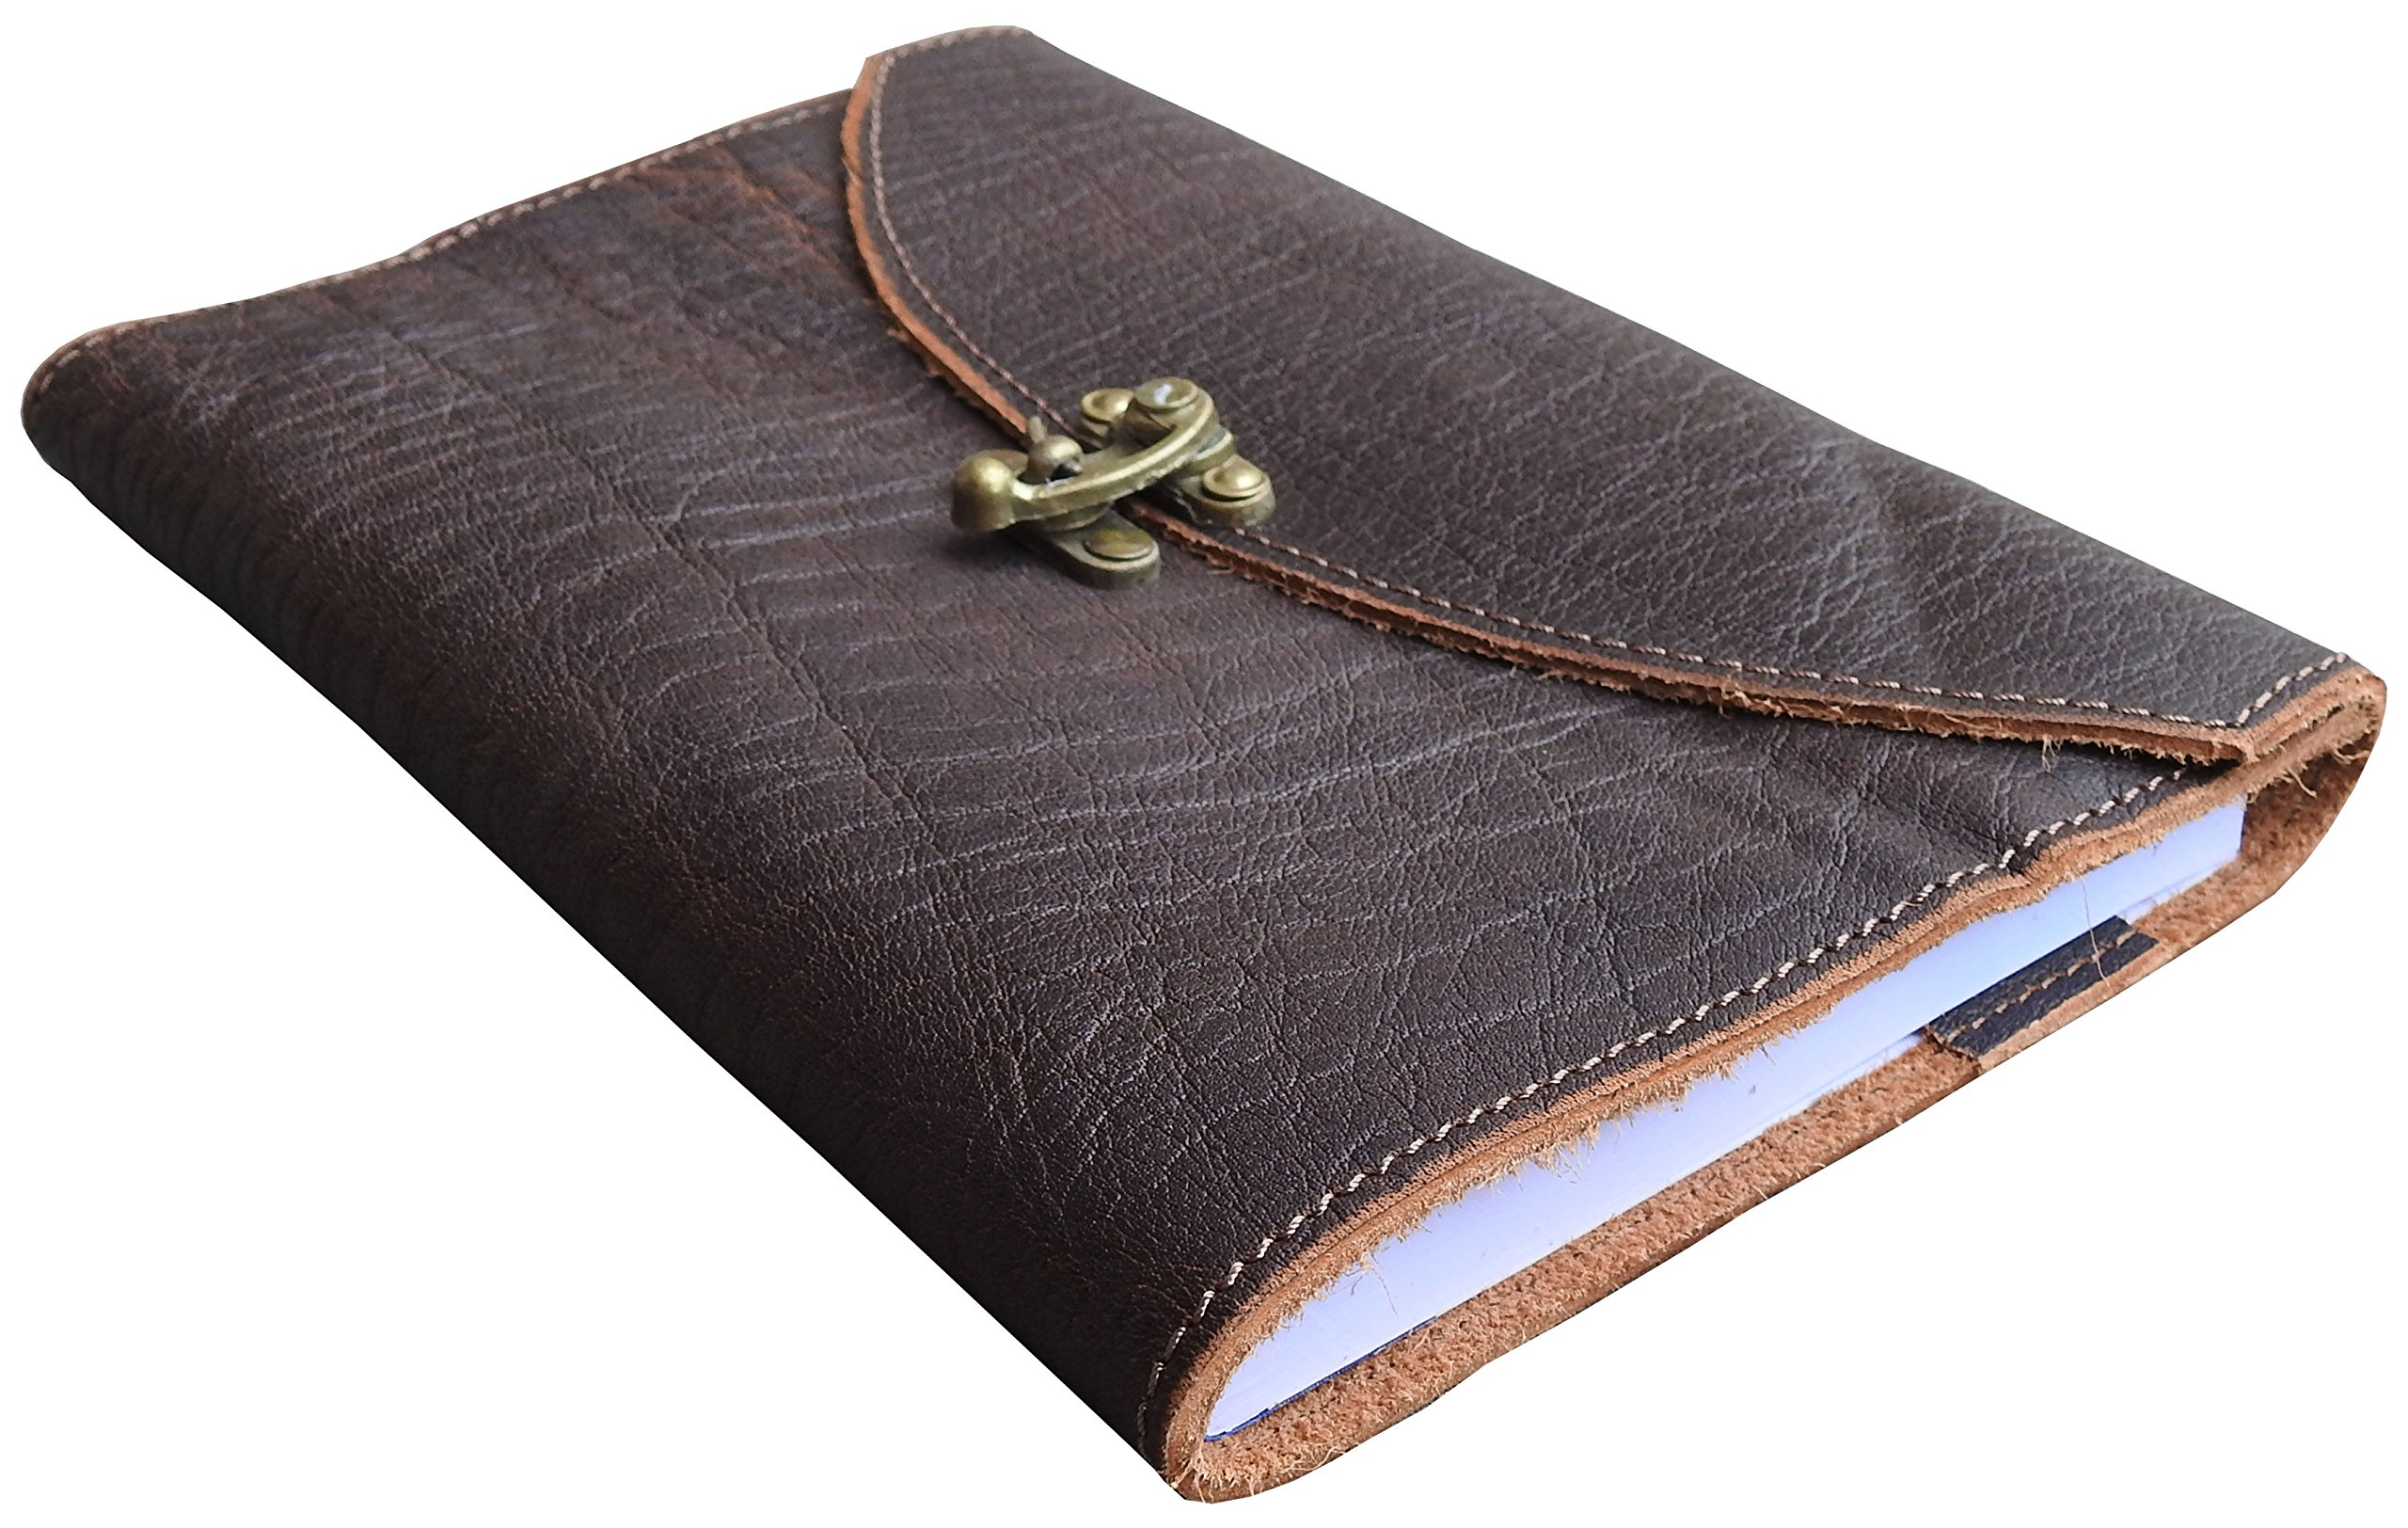 Large Refillable Handmade Leather Journal - 8'' X 5.75'' with C-lock closure (Antique Dark Brown)